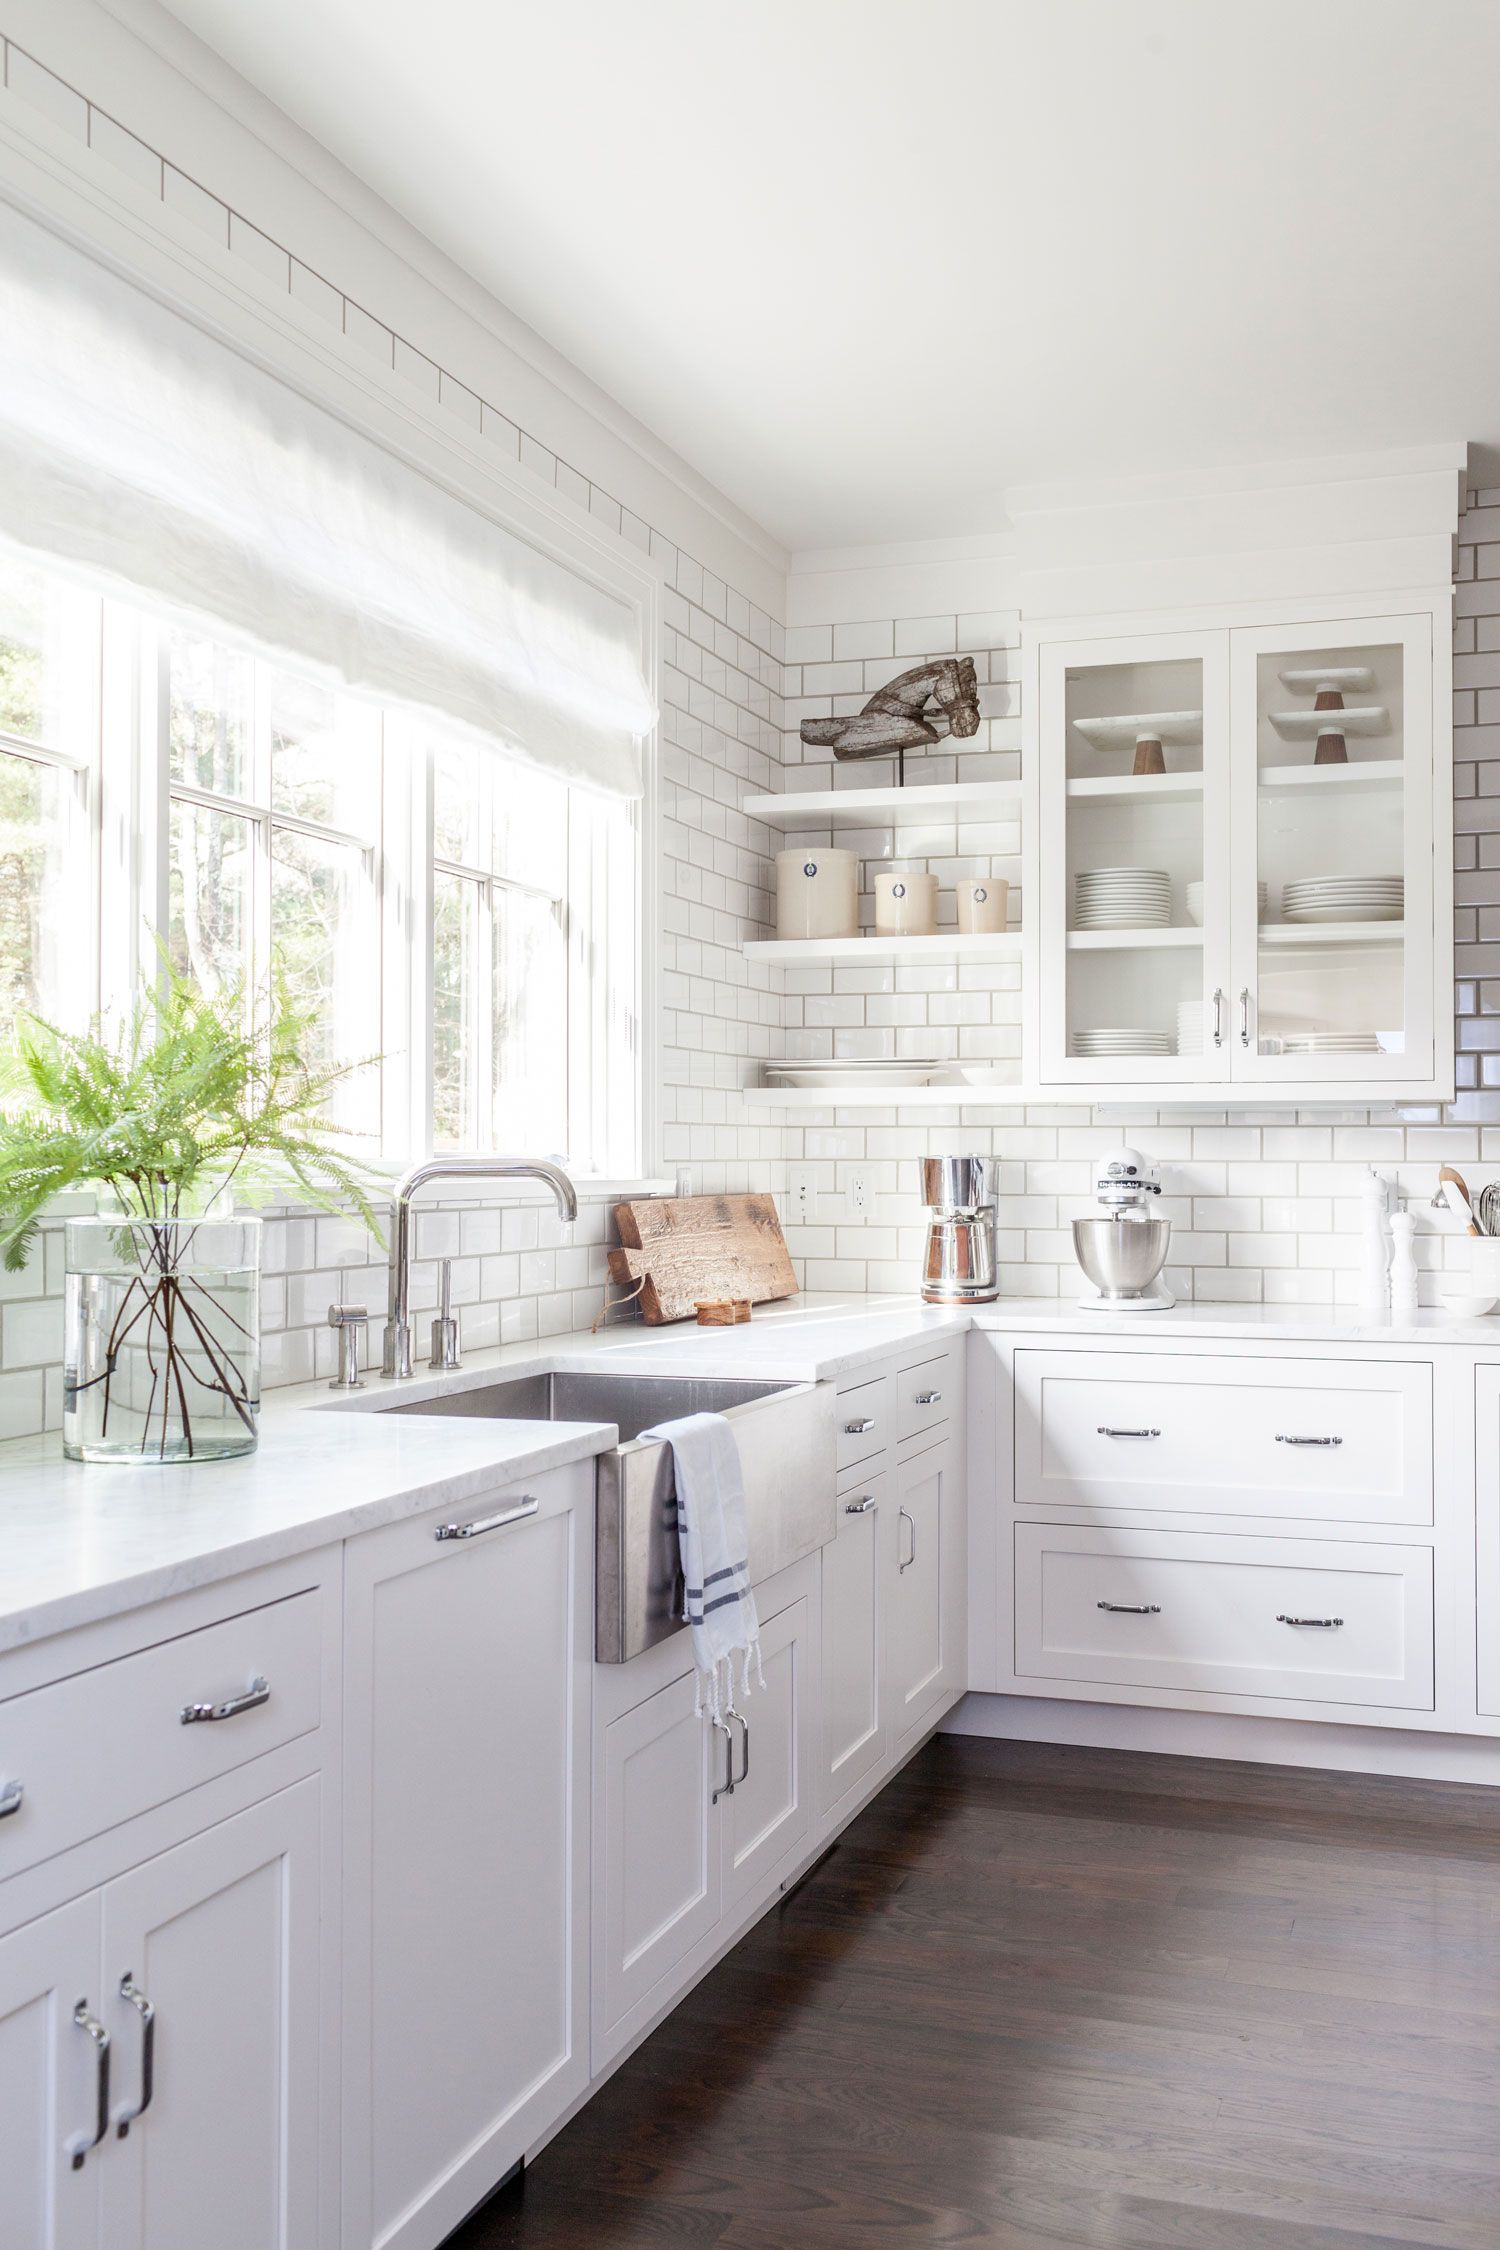 An Old Farmhouse Because A Modern Gem   Kitchen Design Ideas     Amazing kitchen design idea with white tile  white cabinets  large window  with white blinds and open kitchen shelves